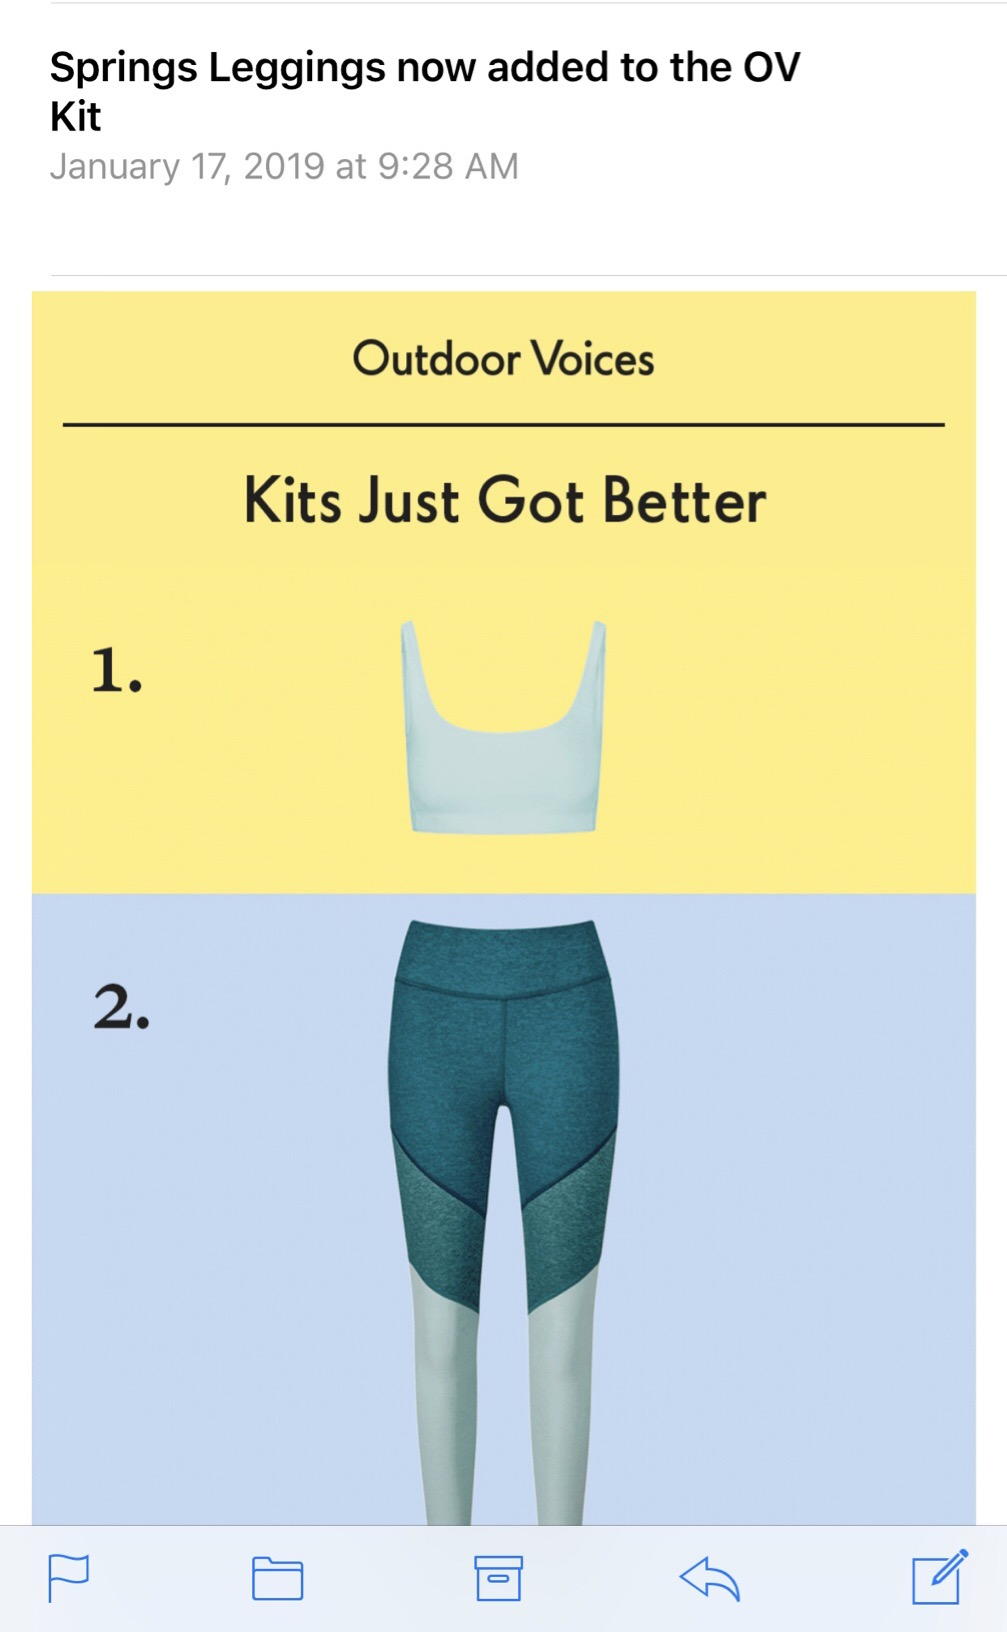 outdoor-voices-spring-leggings-kit